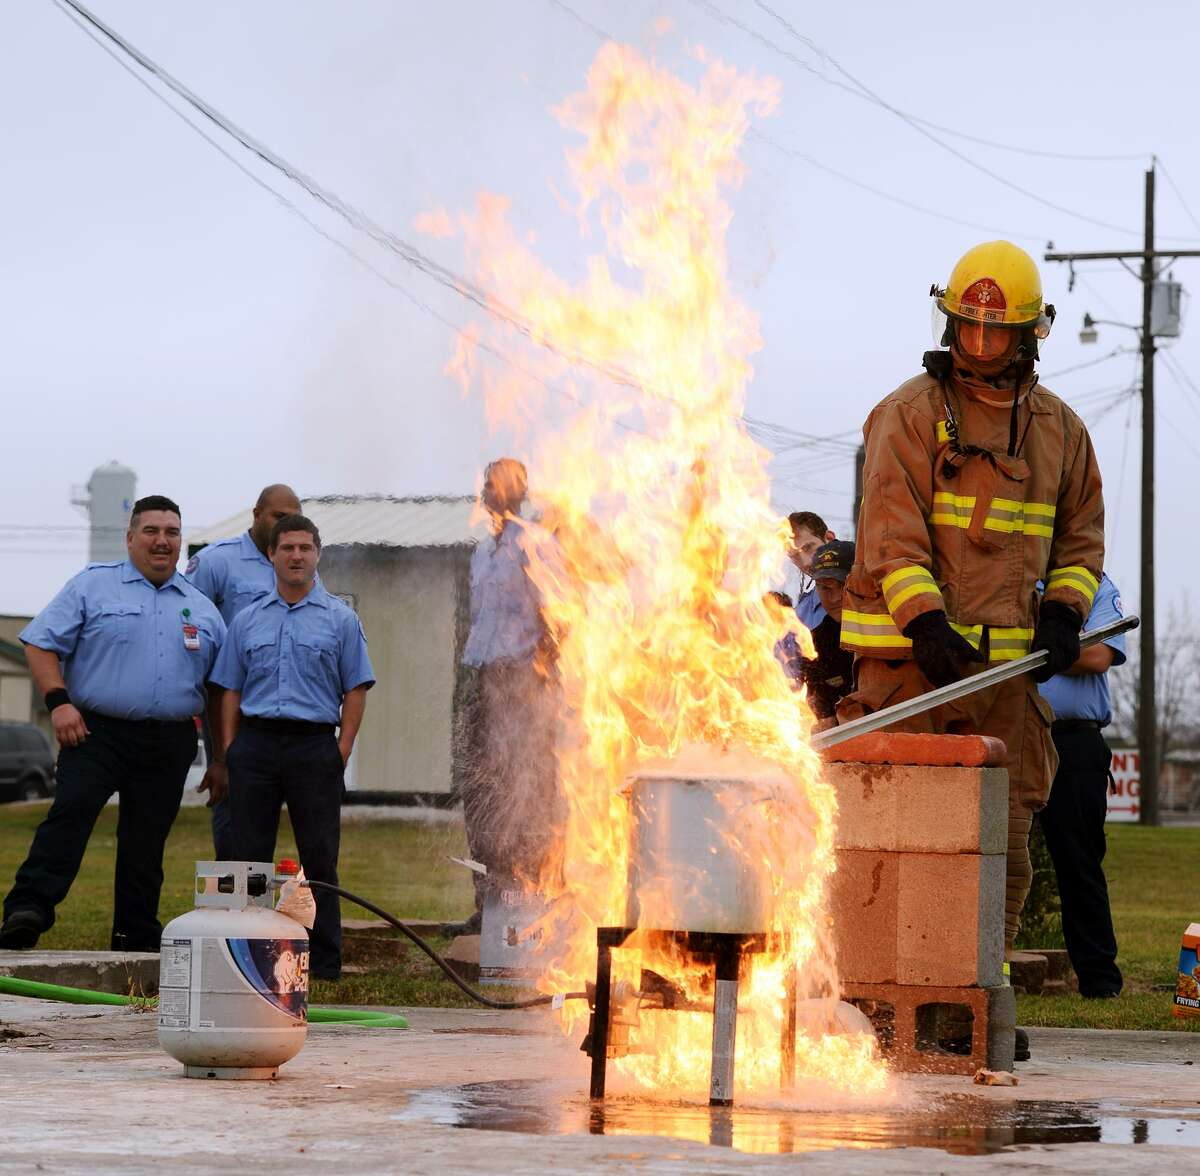 Fireman Andy Brown drops a frozen turkey into an overfilled pot of oil as it spills over and catches fire Friday morning. The Beaumont Fire Department demonstrated the dangers of improperly frying a turkey at their training facility Friday morning. Texas is ranked number one in the nation for turkey frying incidents. Photo taken Jake Daniels/@JakeD_in_SETX